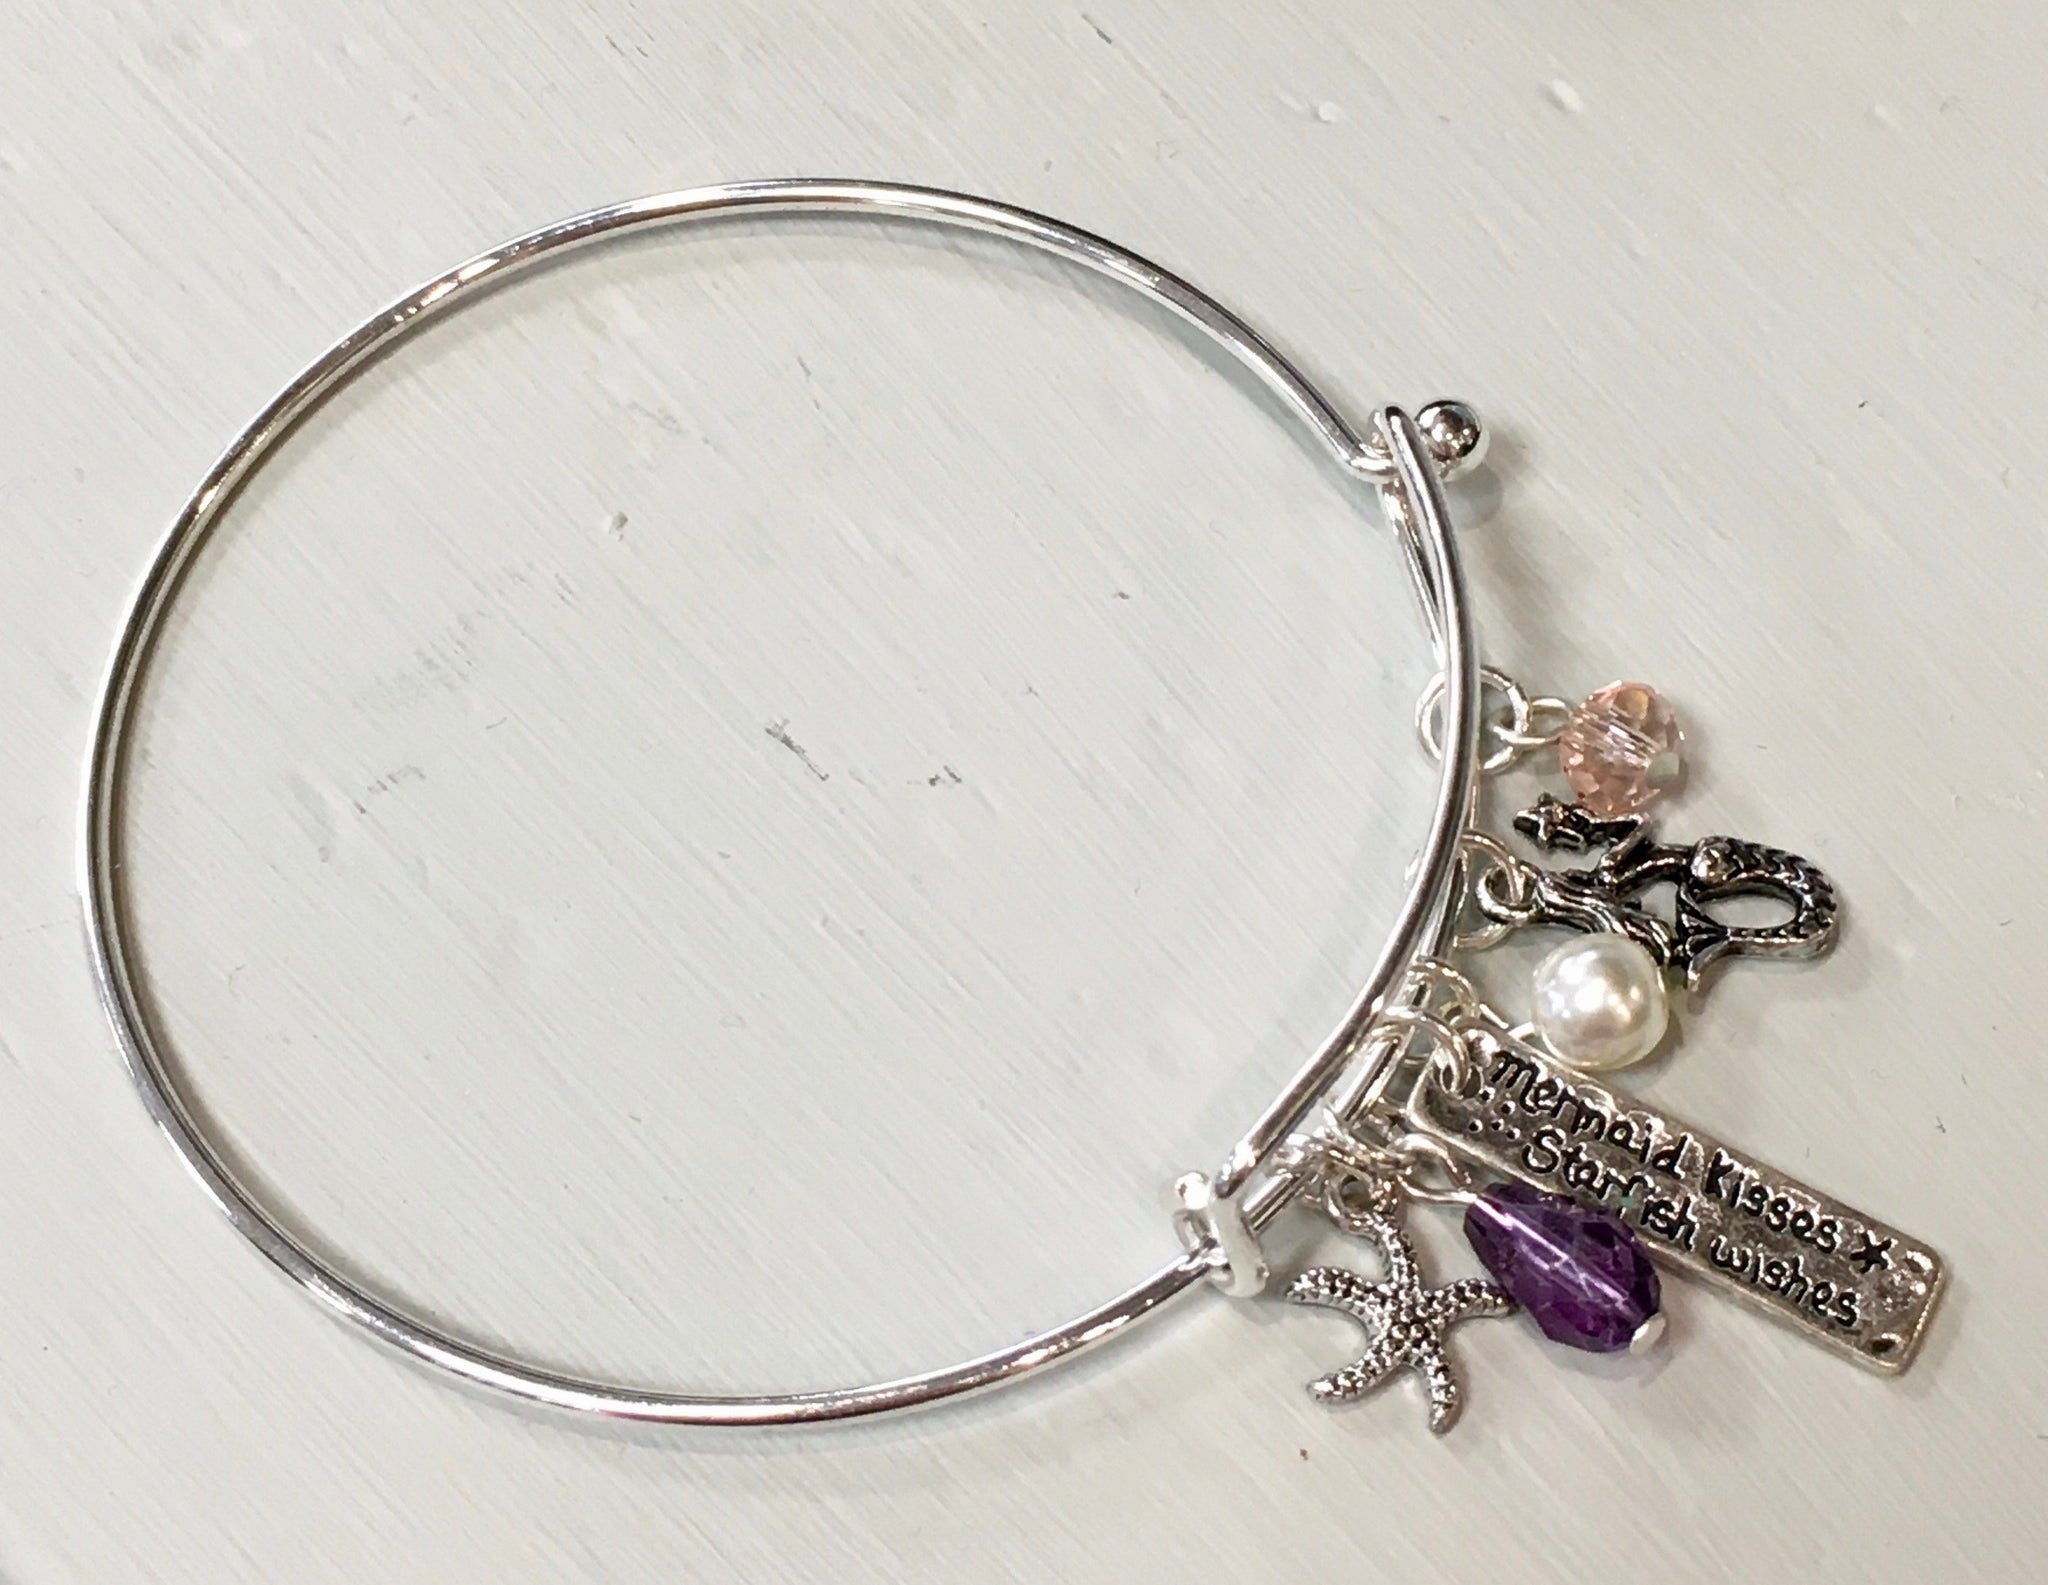 Bracelet Mermaid Charm